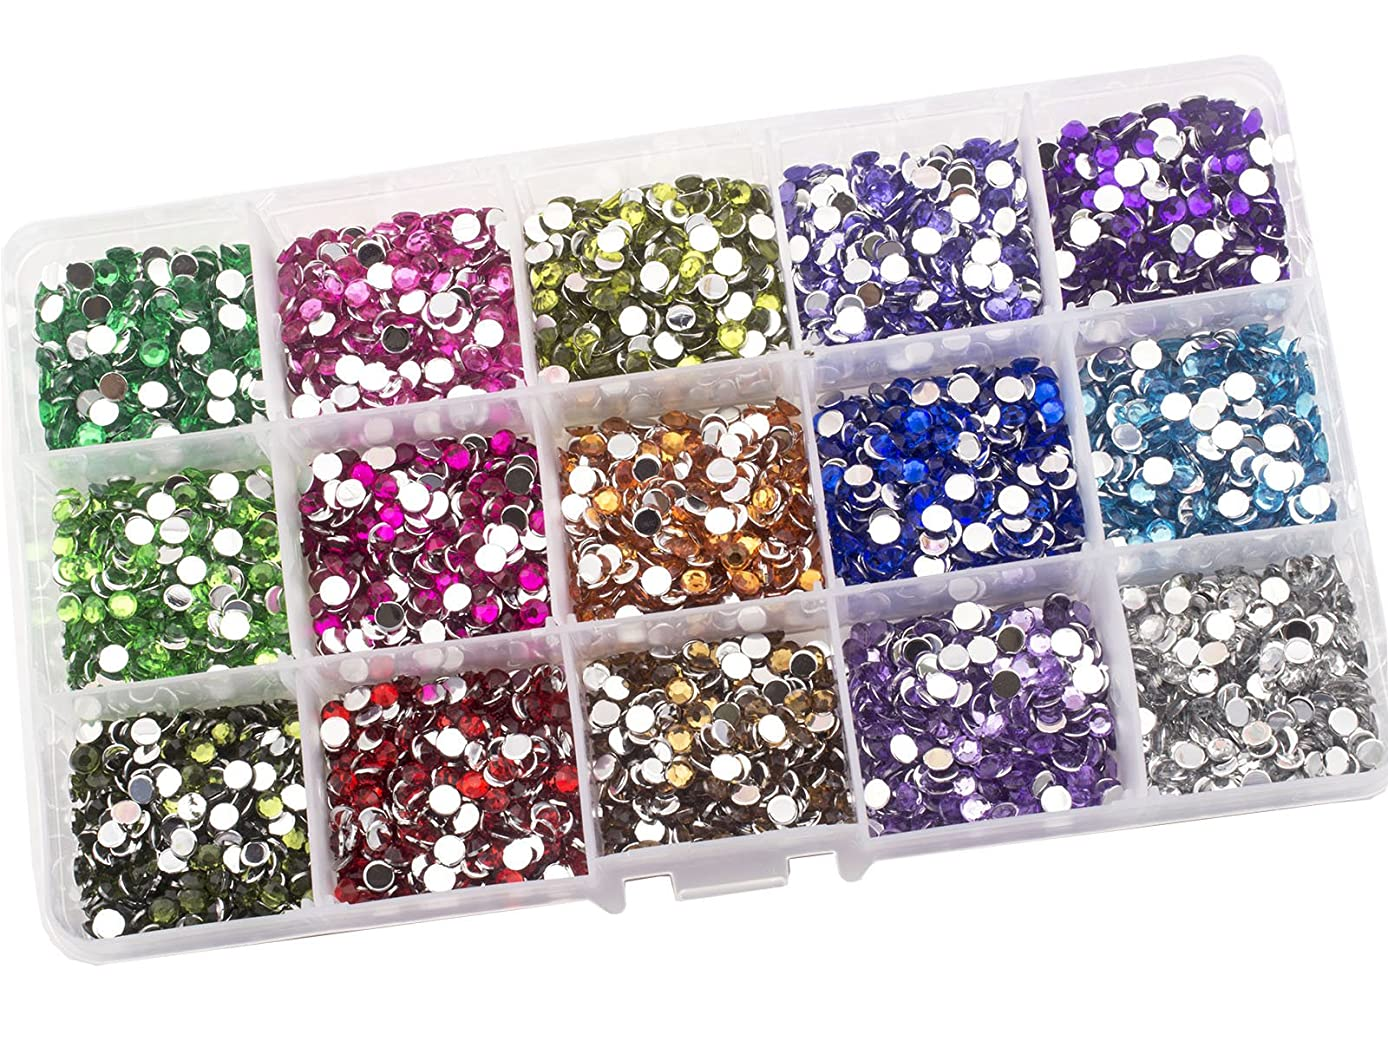 Summer-Ray 4mm Assorted Color Rhinestones In Storage Box (Color Collection #2)